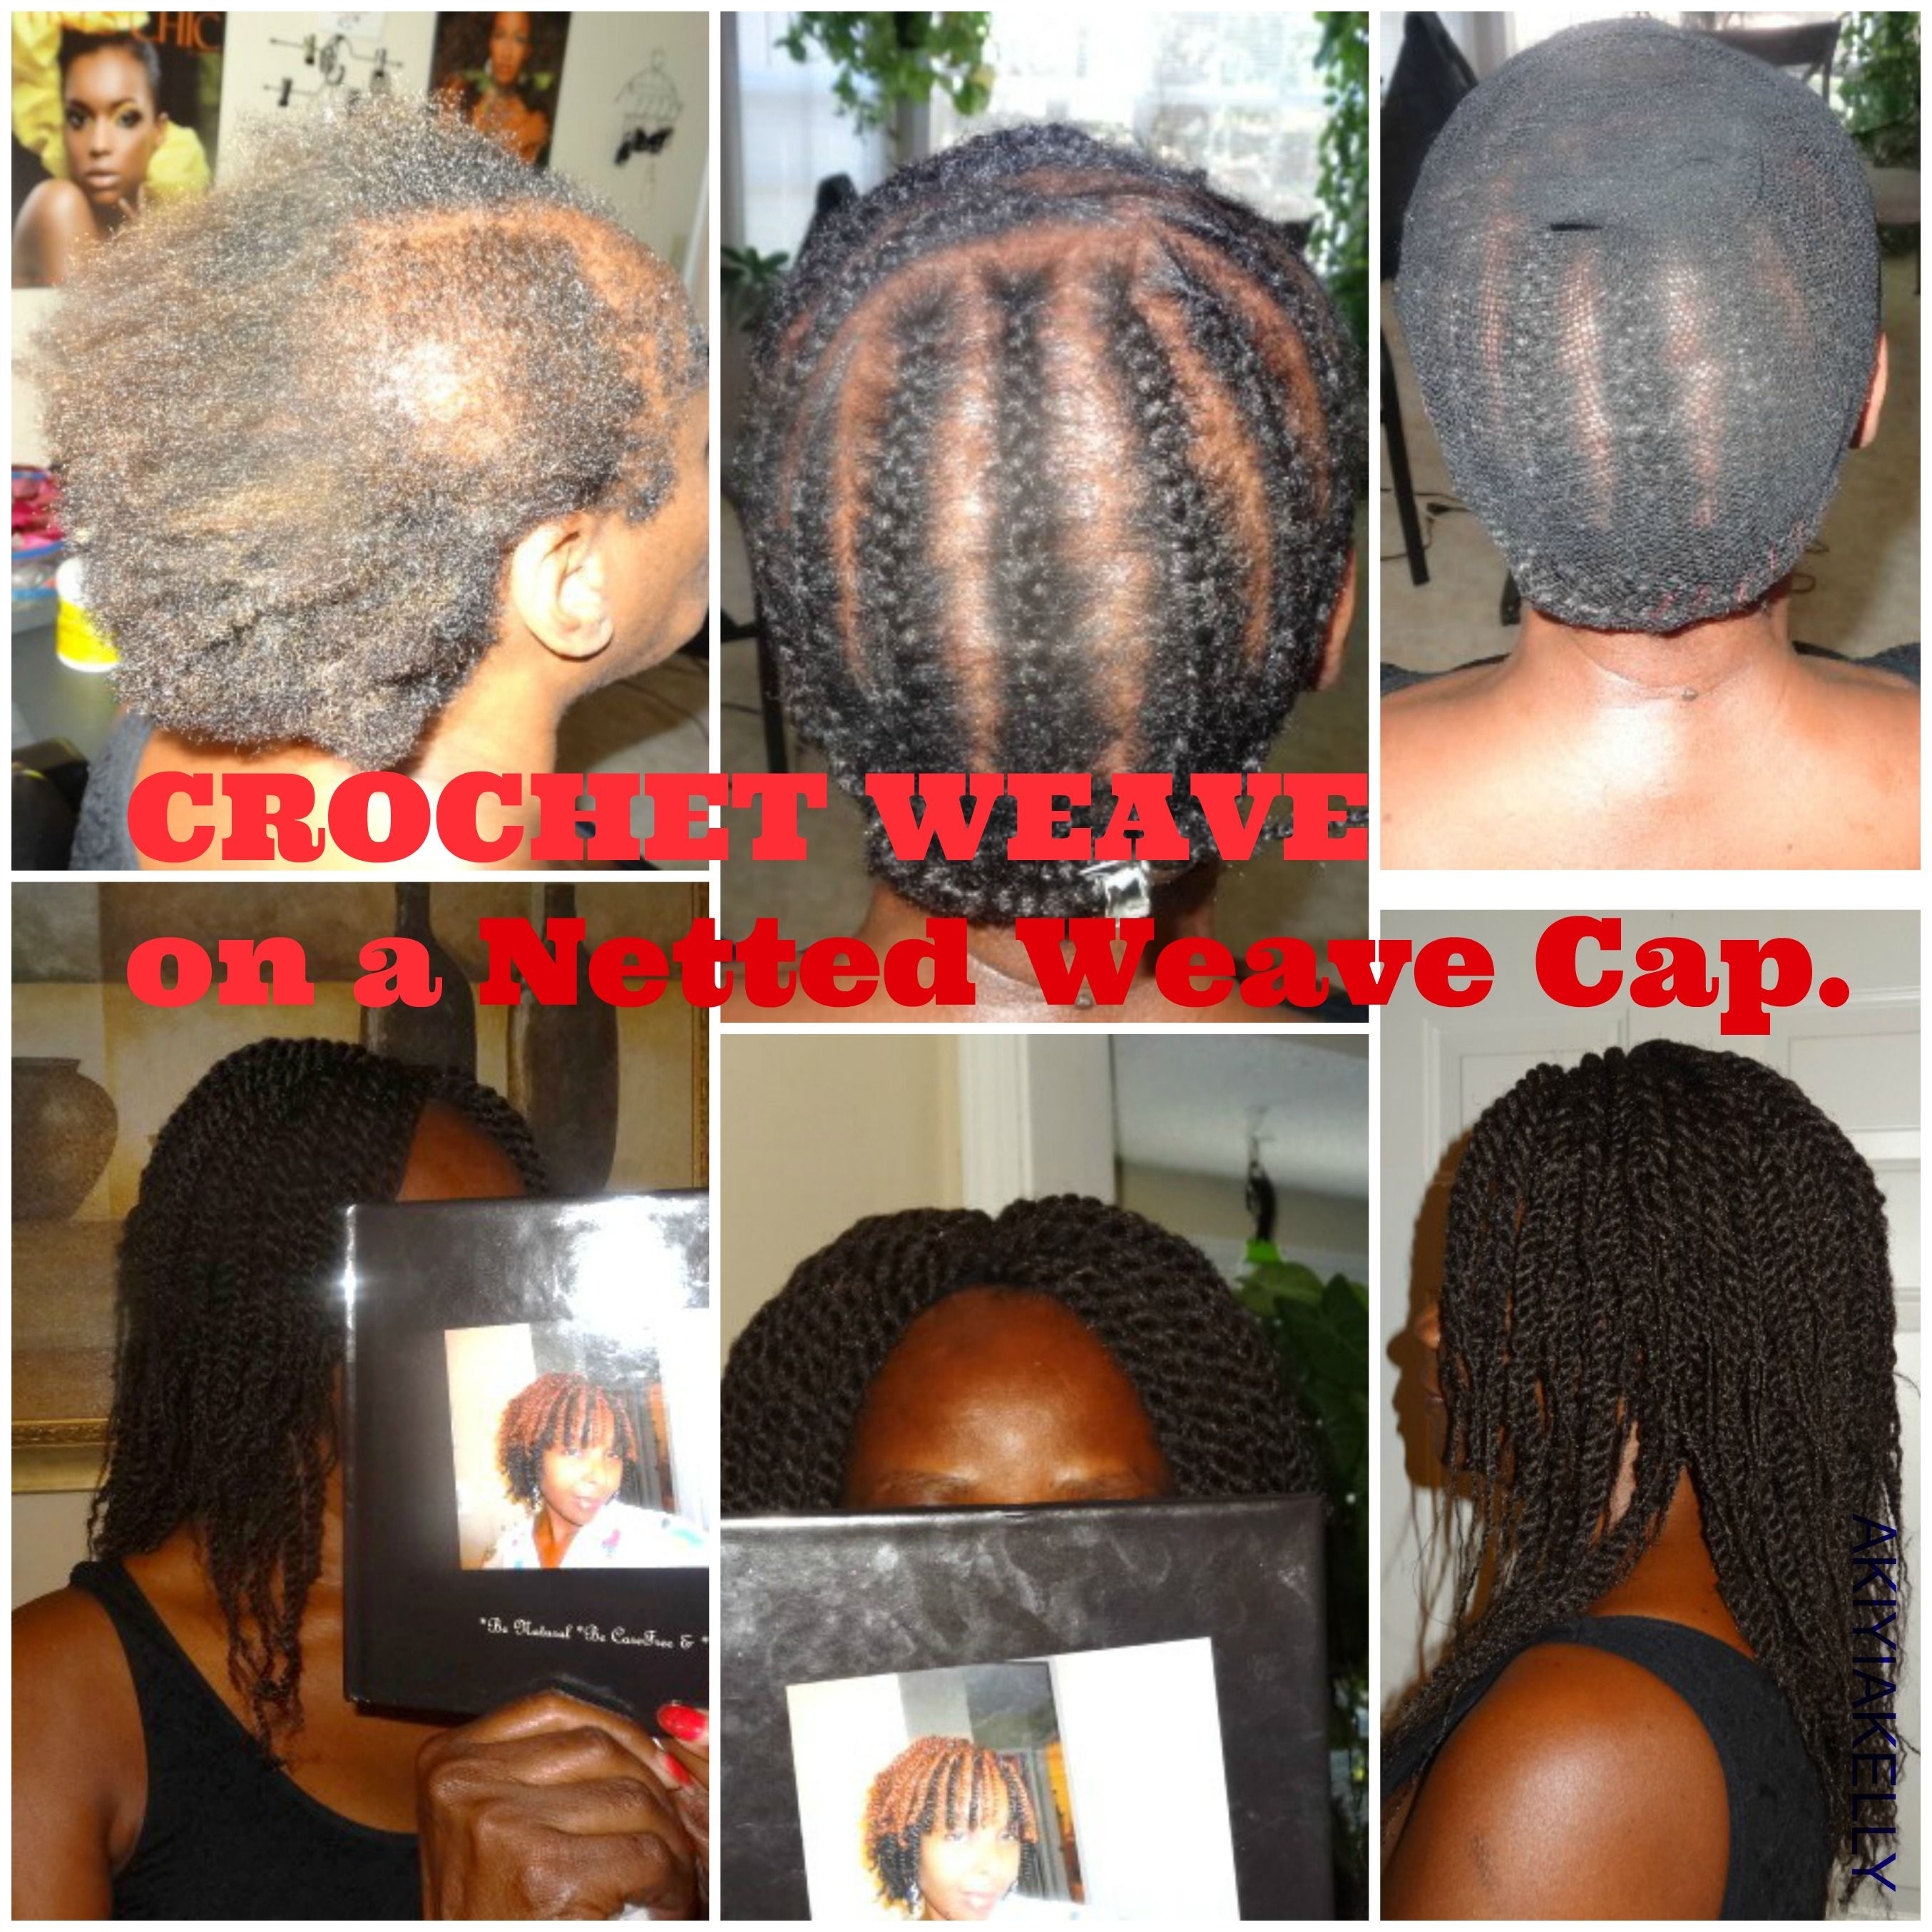 This Is A Pic Of One Of My New Clients She Has Some Hair Loss So